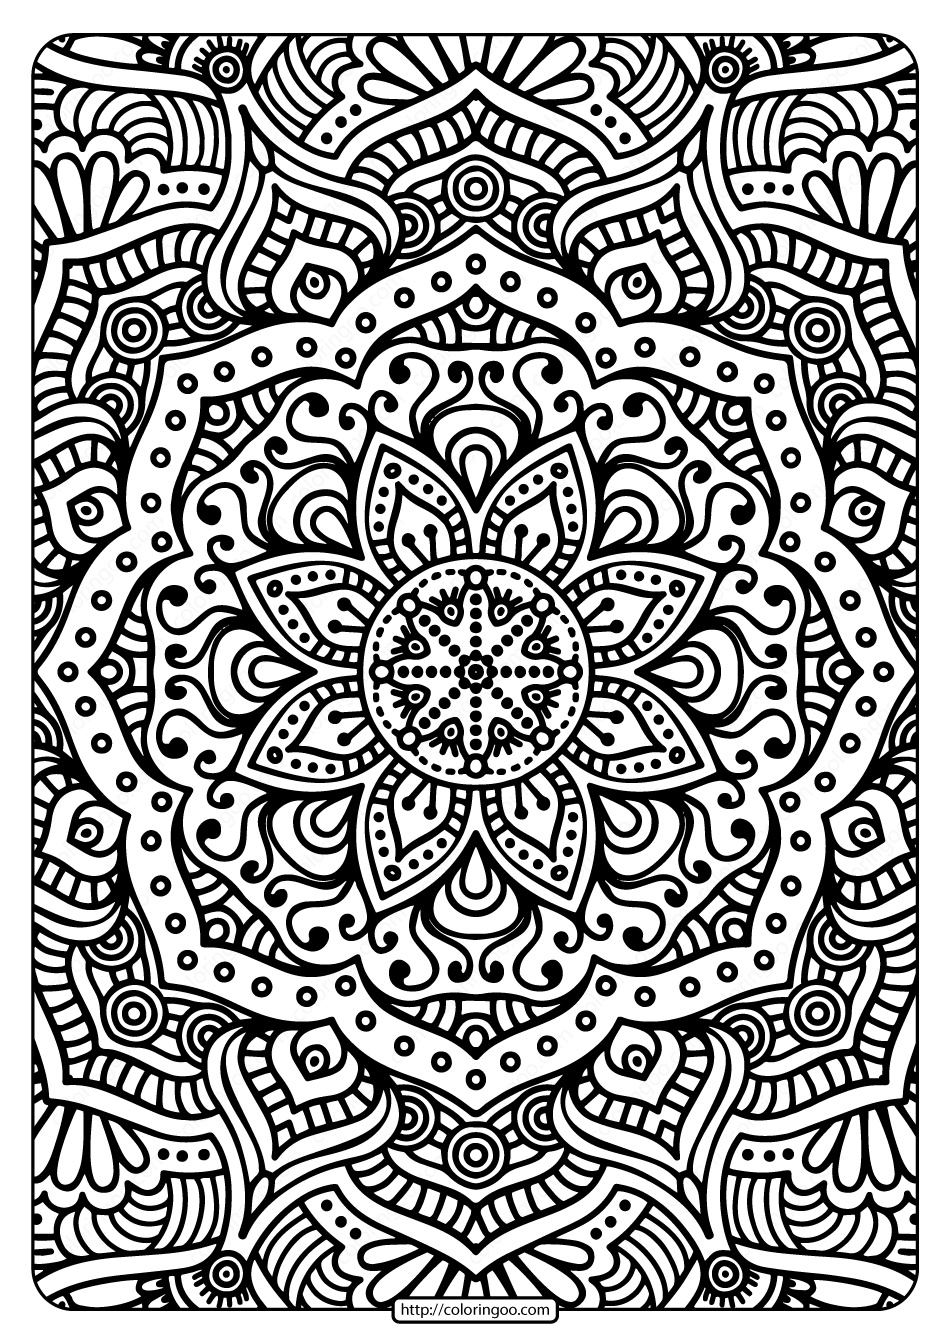 Printable Ornament Indian Flower Mandala Coloring Page